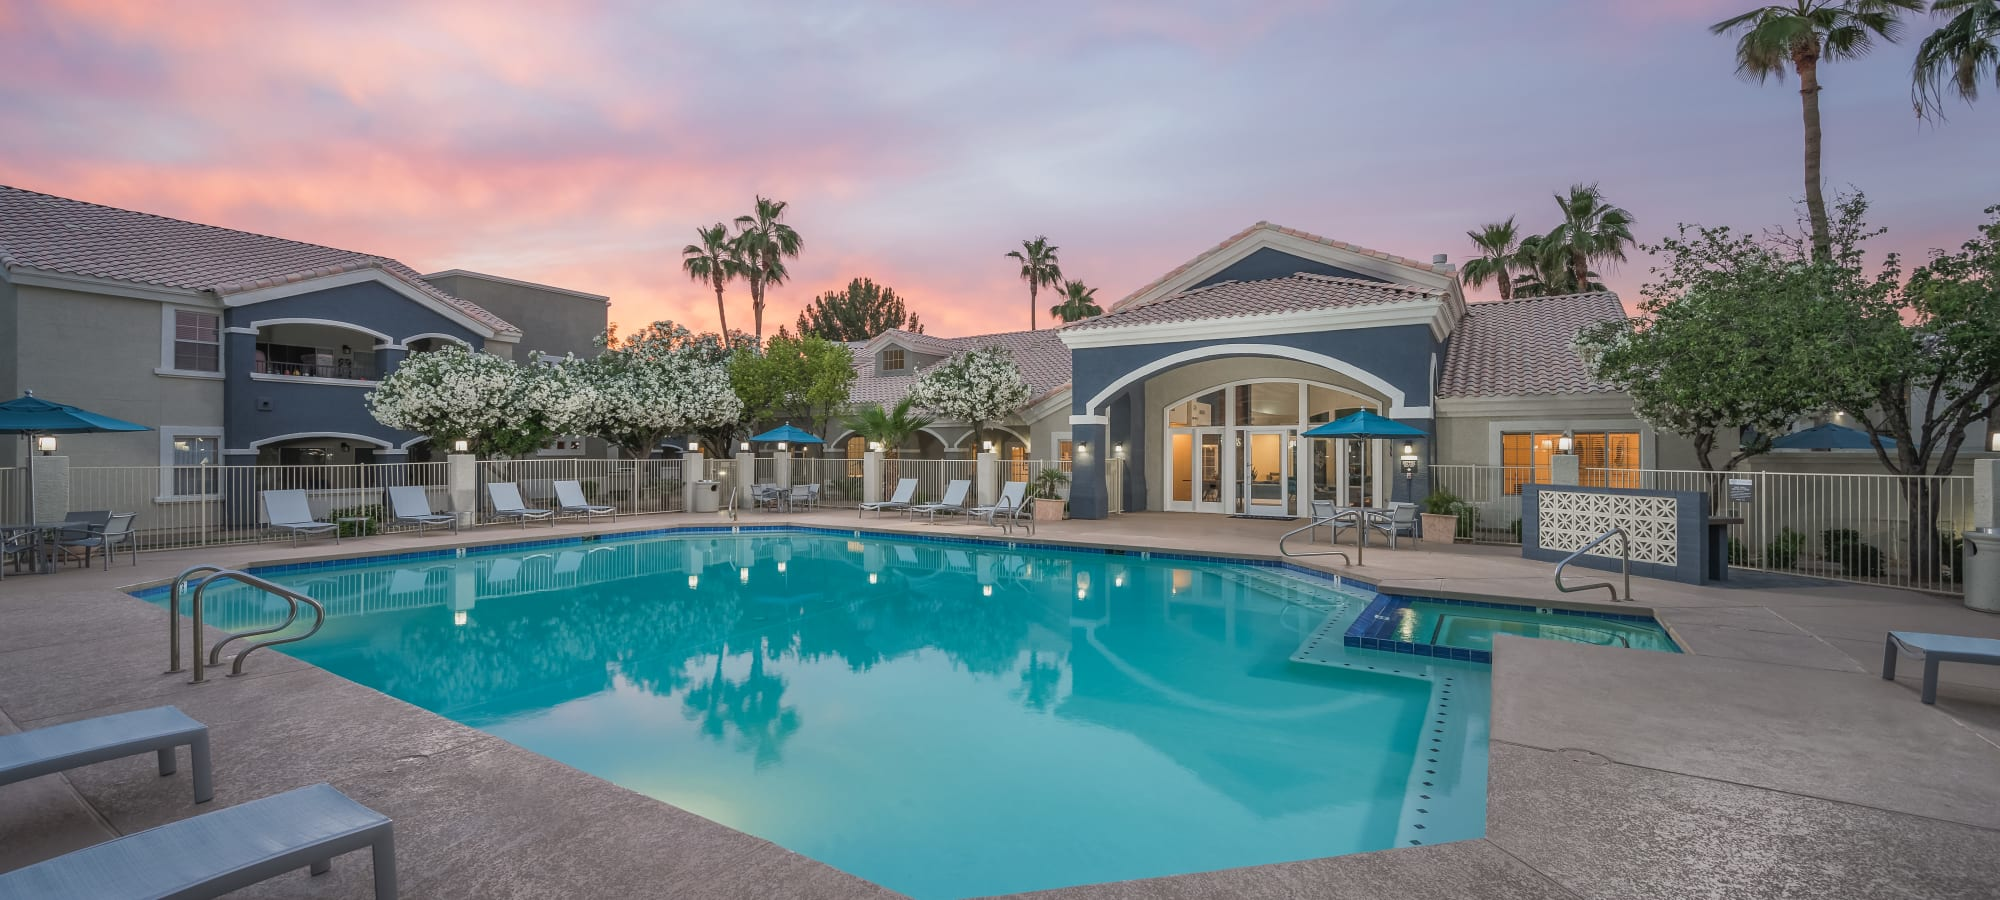 Pool at dusk at The Sterling in Gilbert, Arizona